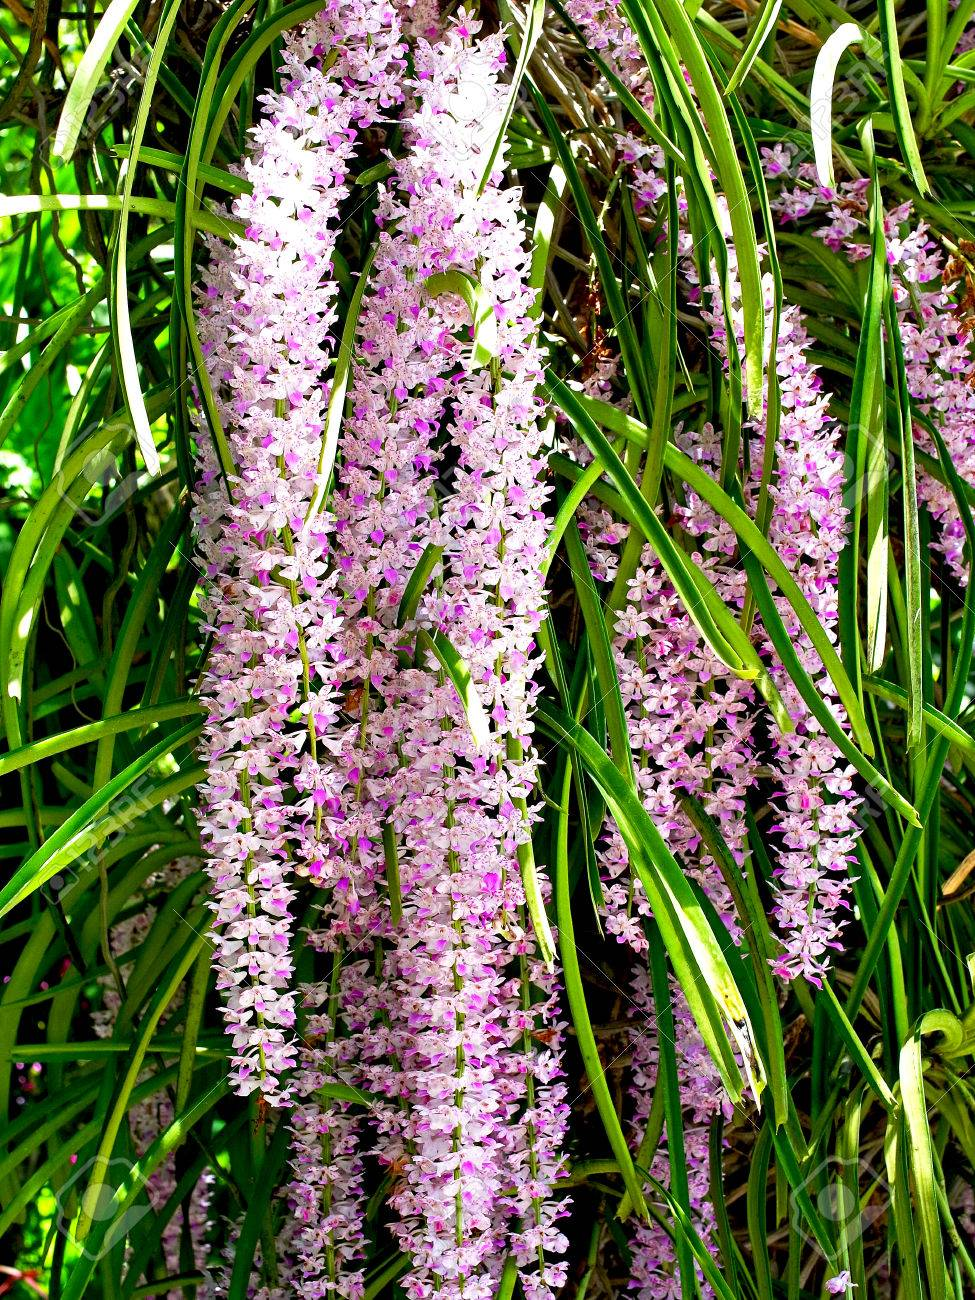 Bunches Of Pink And White Aromatic Flowers Of Rhynchostylis Gigantea